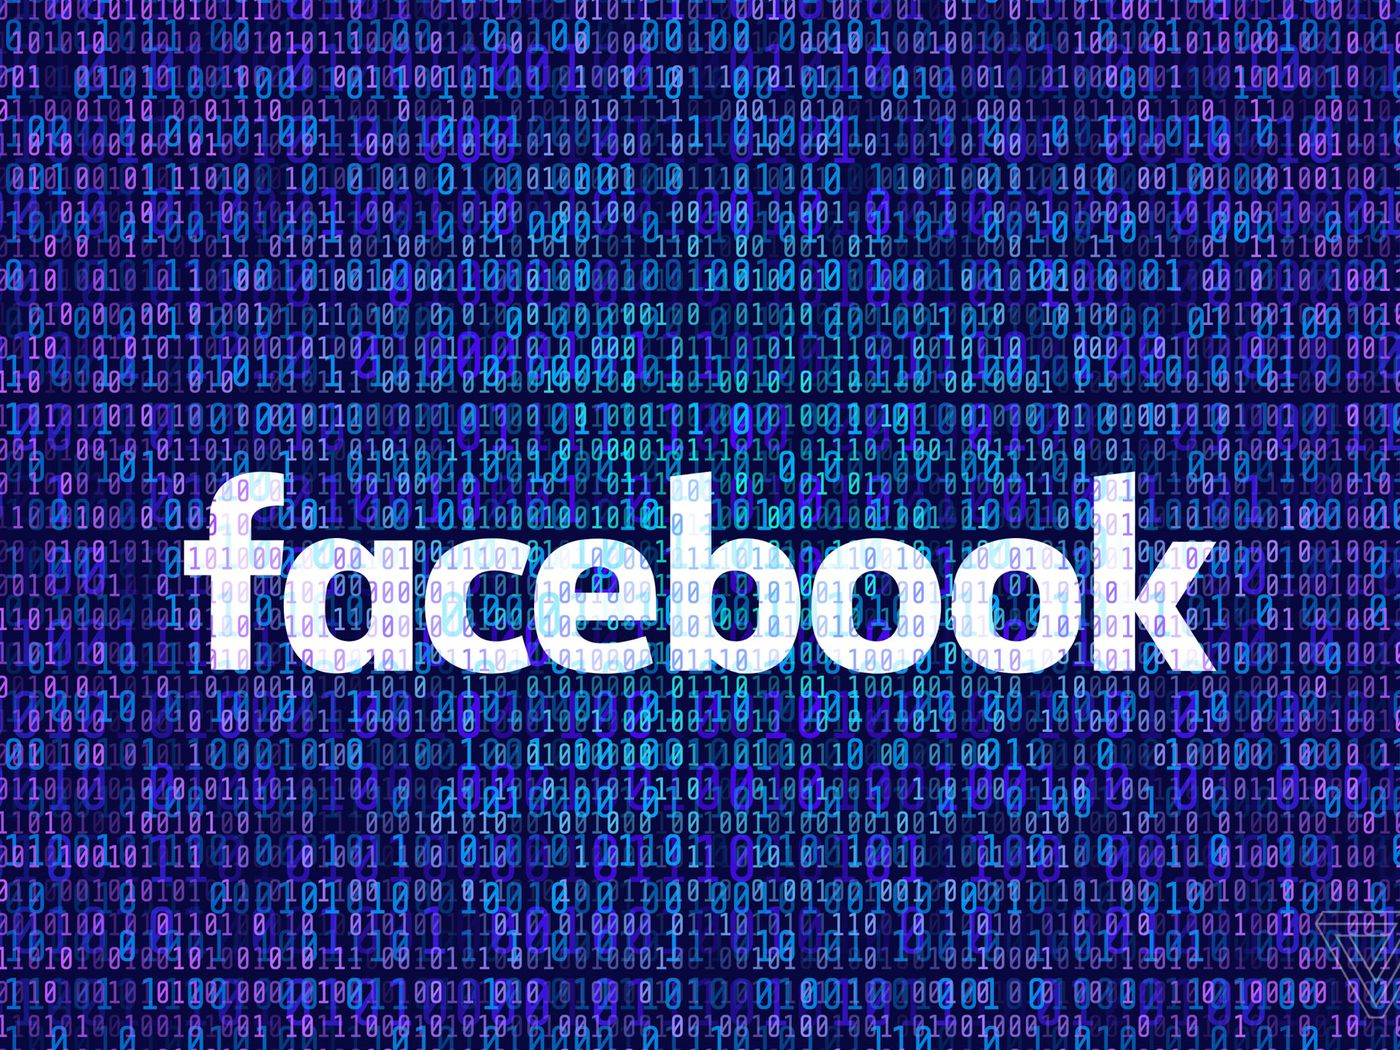 Users can appeal Facebook's editorial decisions